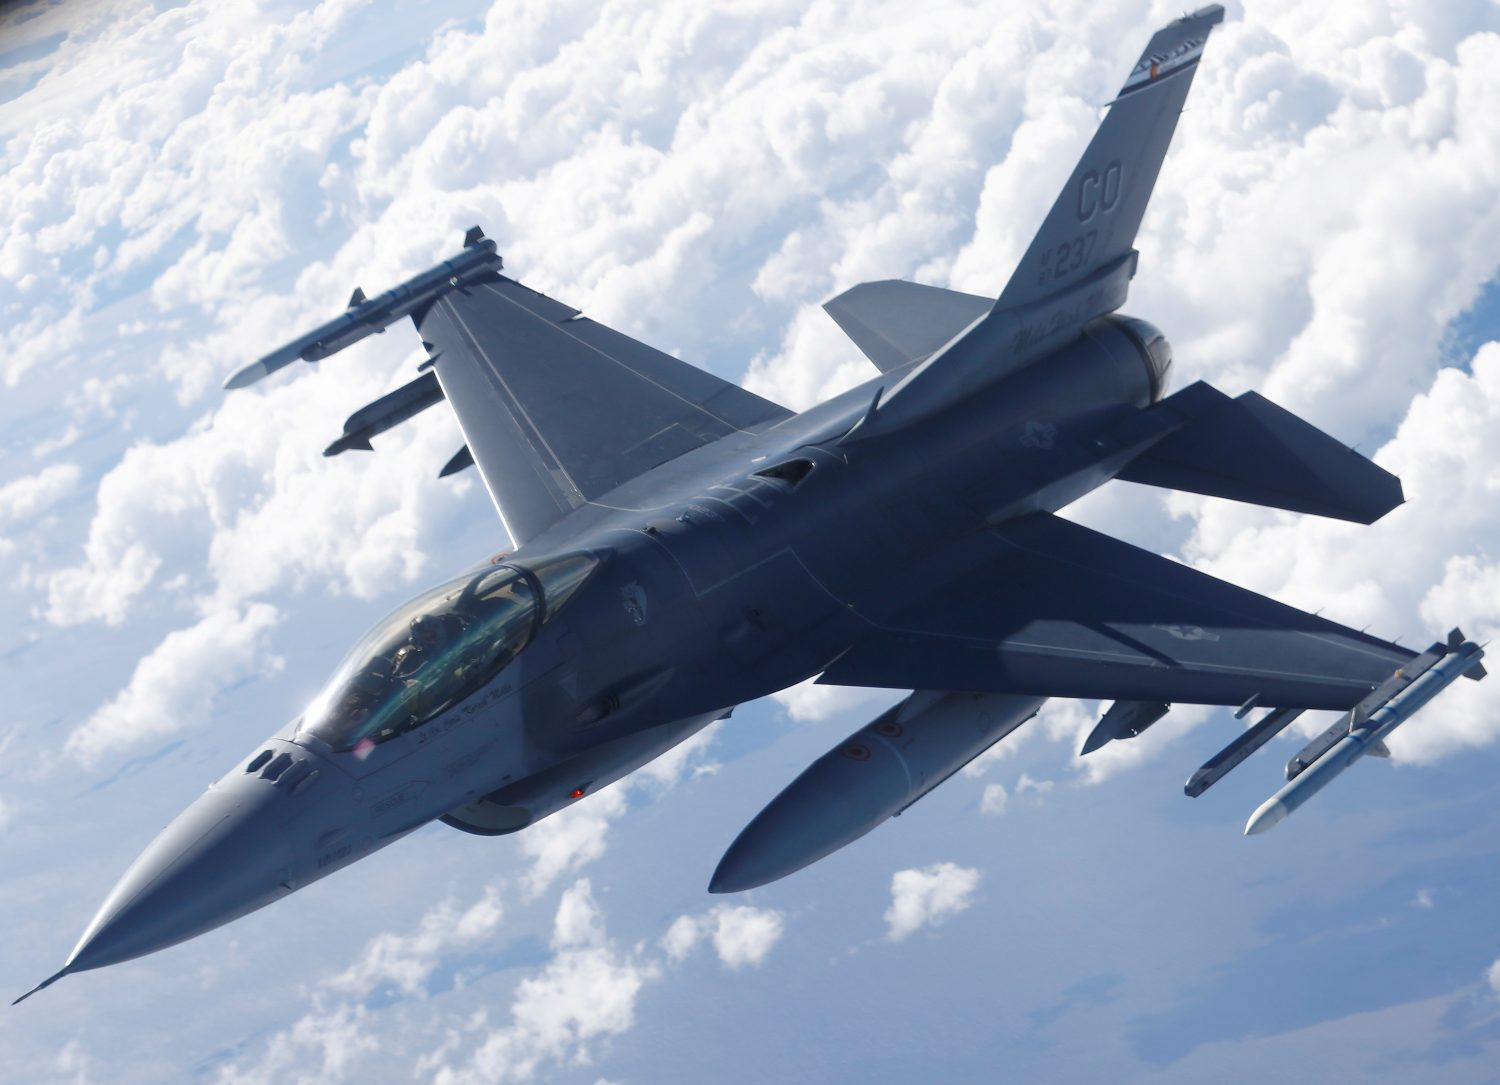 FILE PHOTO: A U.S. Air Force F-16 fighter taking part in the U.S.-led Saber Strike exercise flies over Estonia June 6, 2018. REUTERS/Ints Kalnins/File Photo